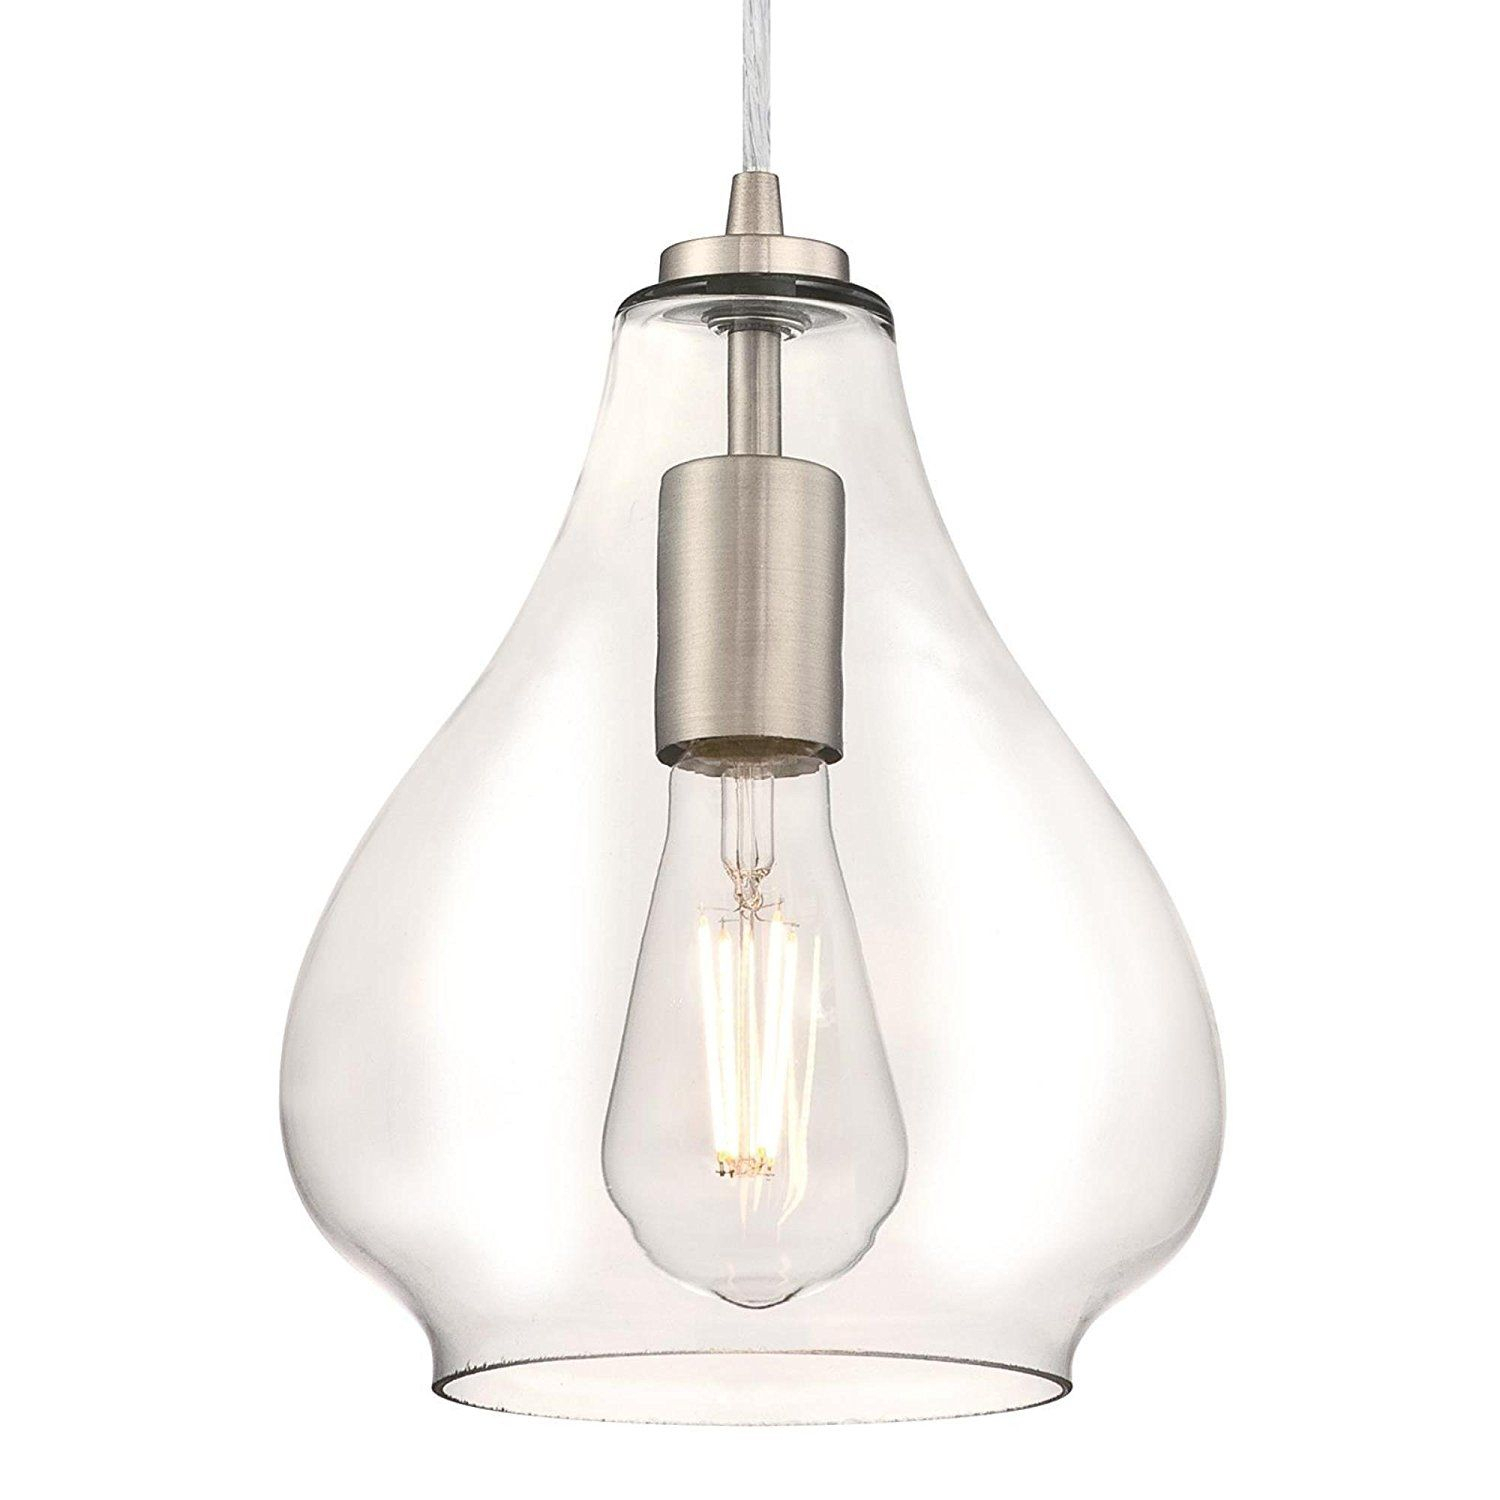 Westinghouse 6102600 Industrial One Light Adjustable Mini Pertaining To Moyer 1 Light Single Cylinder Pendants (View 17 of 30)